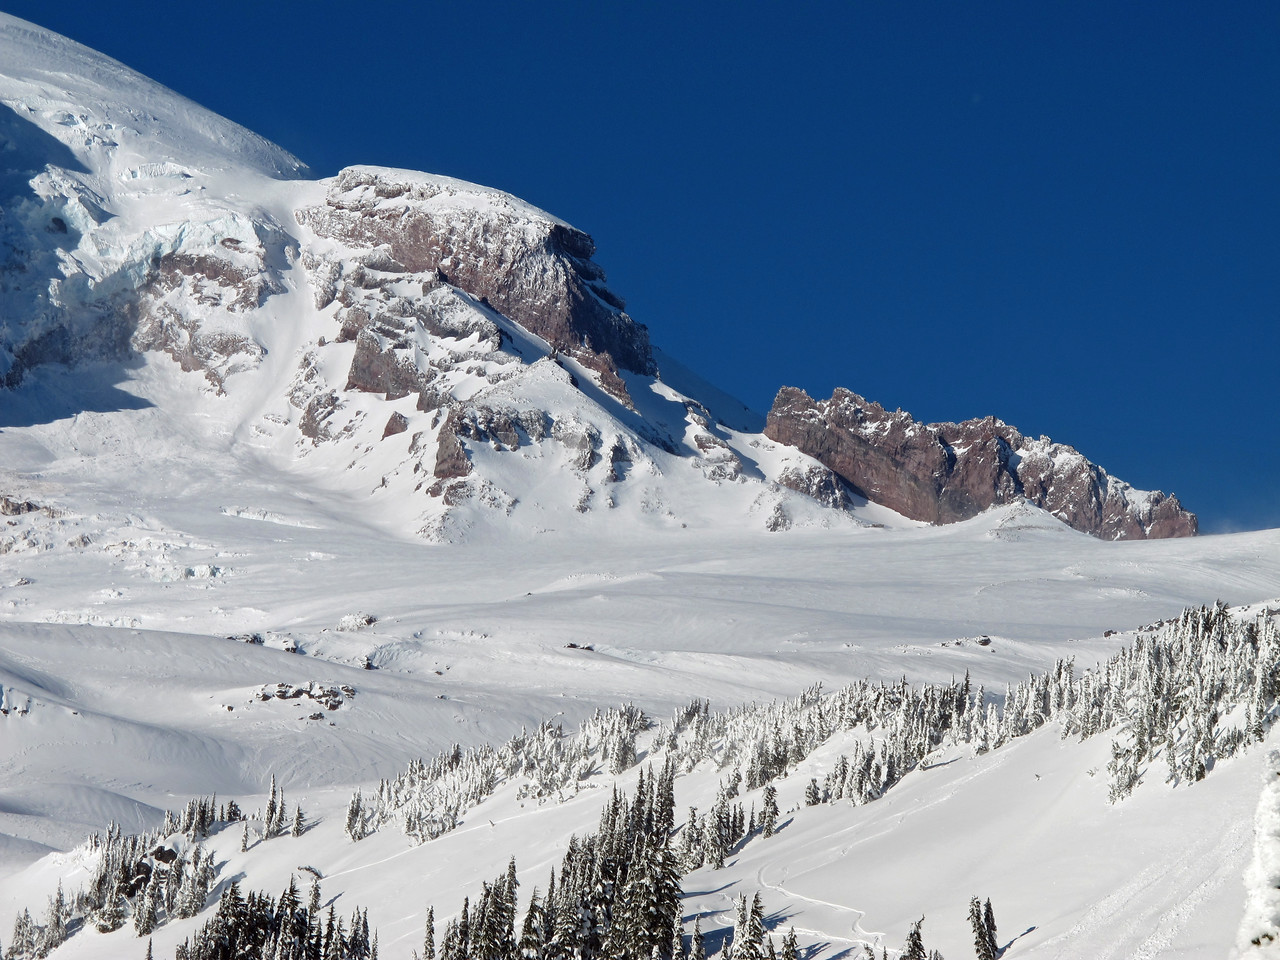 Camp Muir can be seen (in full size image) in the snow bowl at the base of the right rock outcrop (to the left of center of the rock formation).